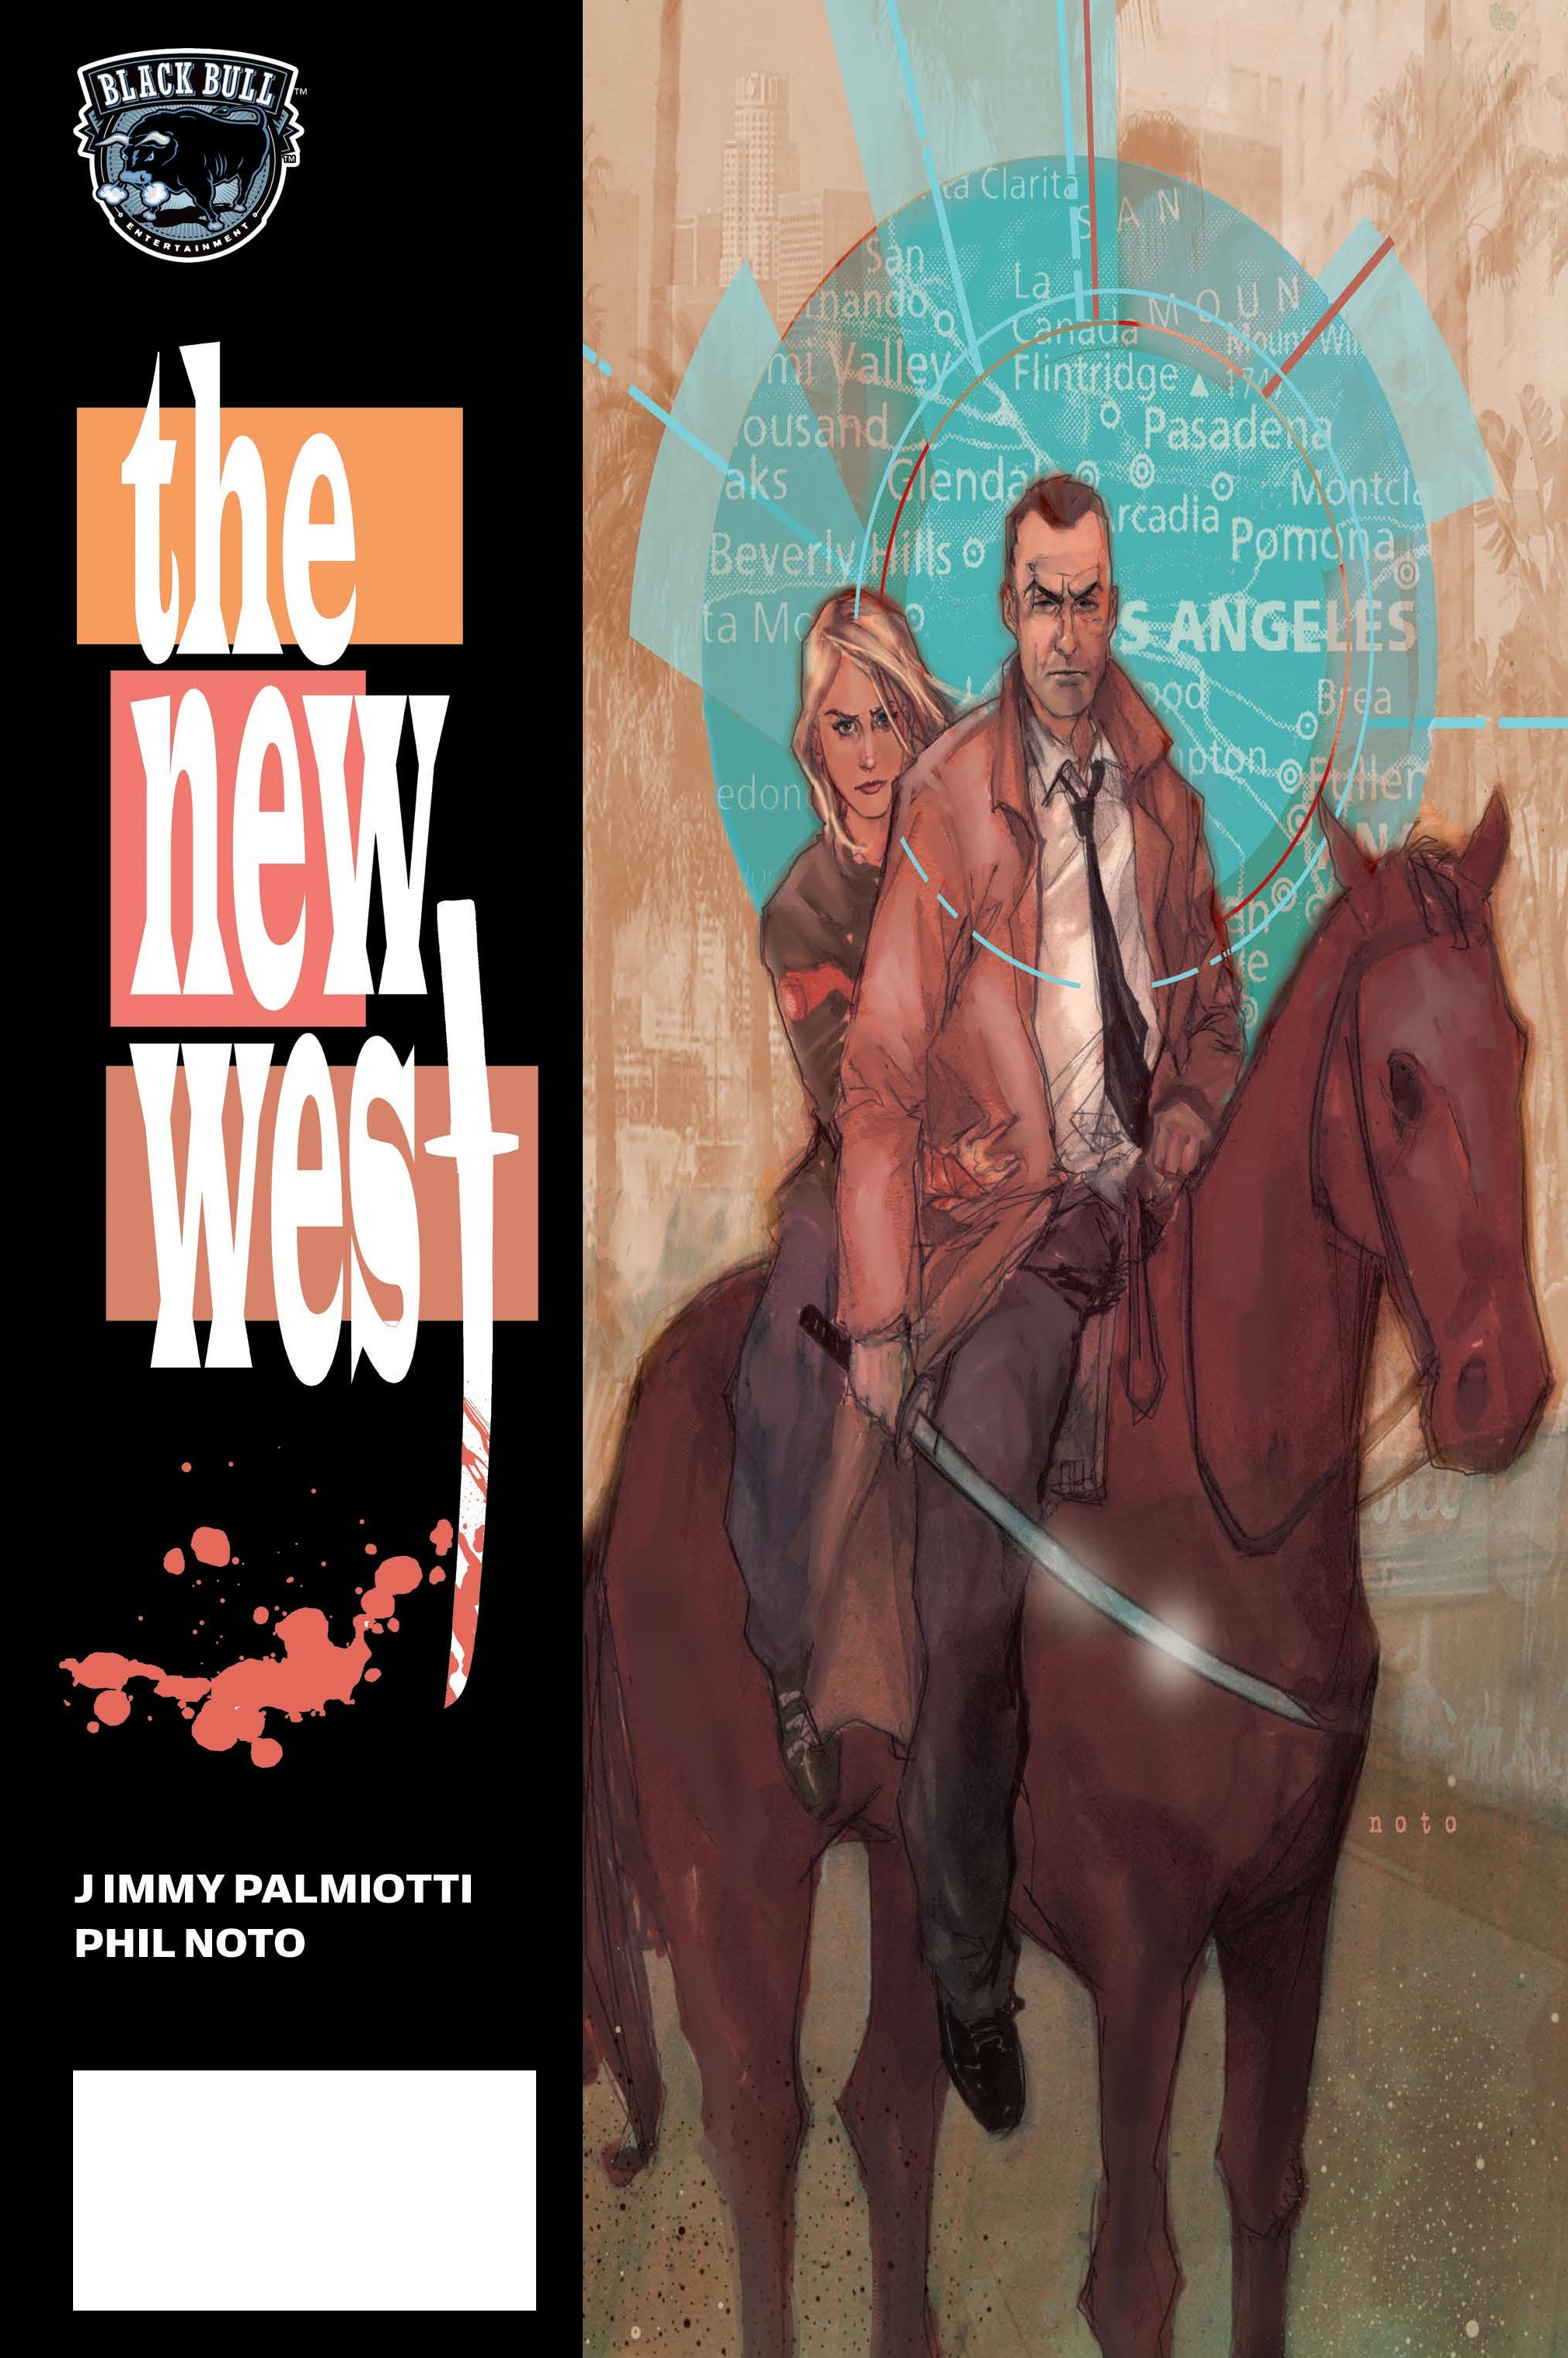 New West Issue1 Cover.jpg